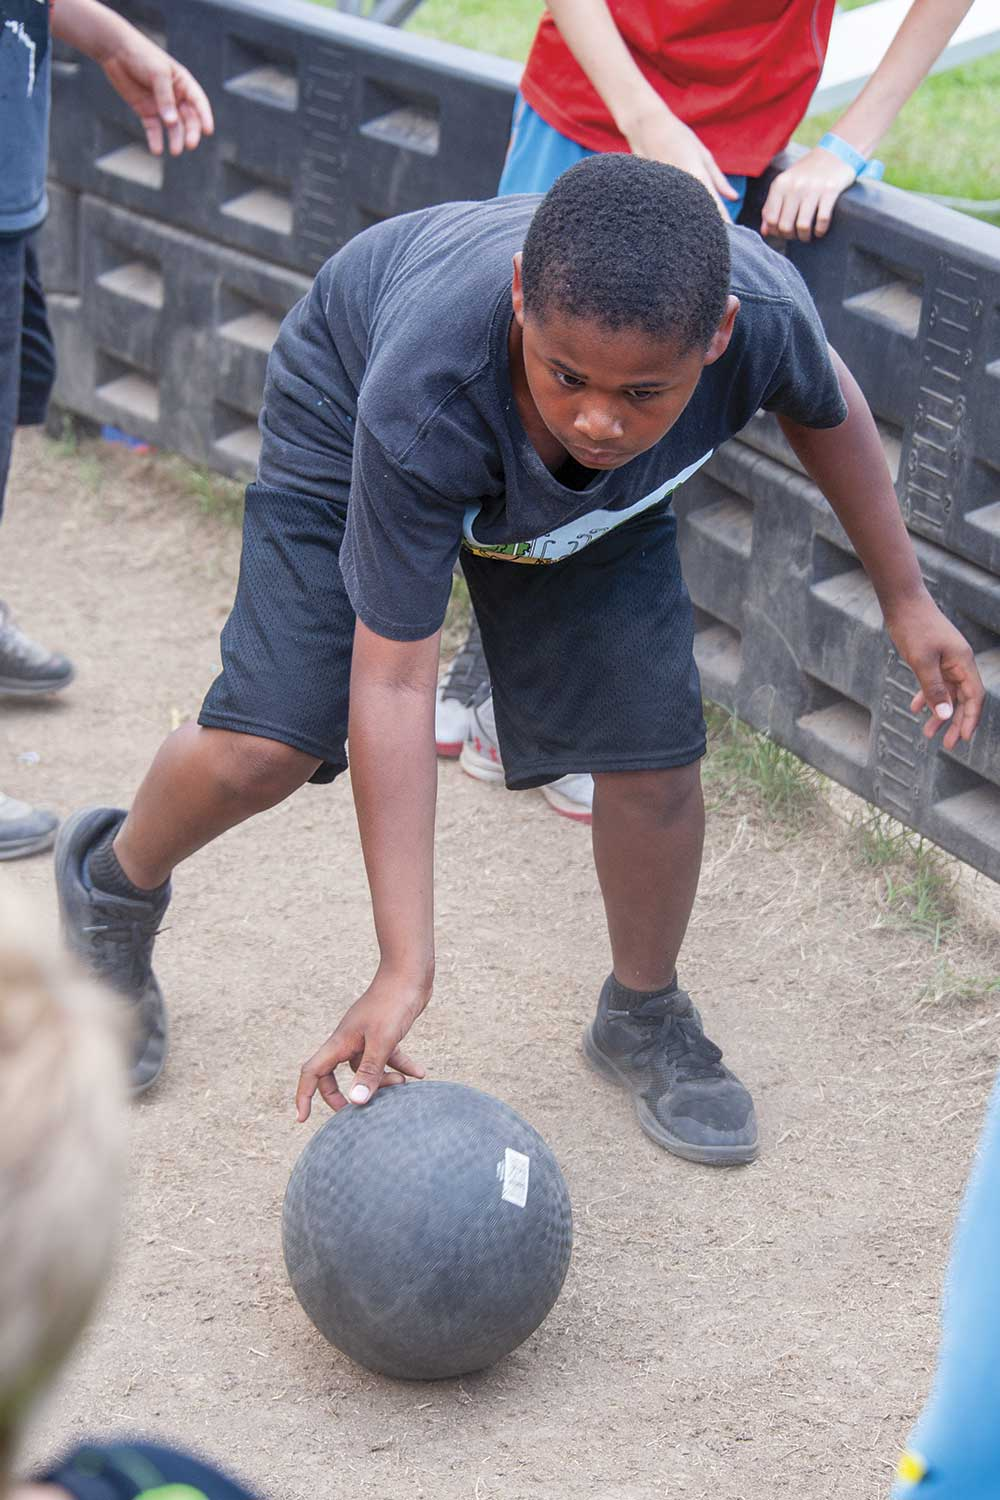 """The self-proclaimed """"King"""" of Gaga Ball, 11-year-old David Smalley of Marion County, demonstrates his skills in the Gaga Ball Pit at the Kentucky Sheriffs' Boys and Girls Ranch. (Photo by Jim Robertson)"""